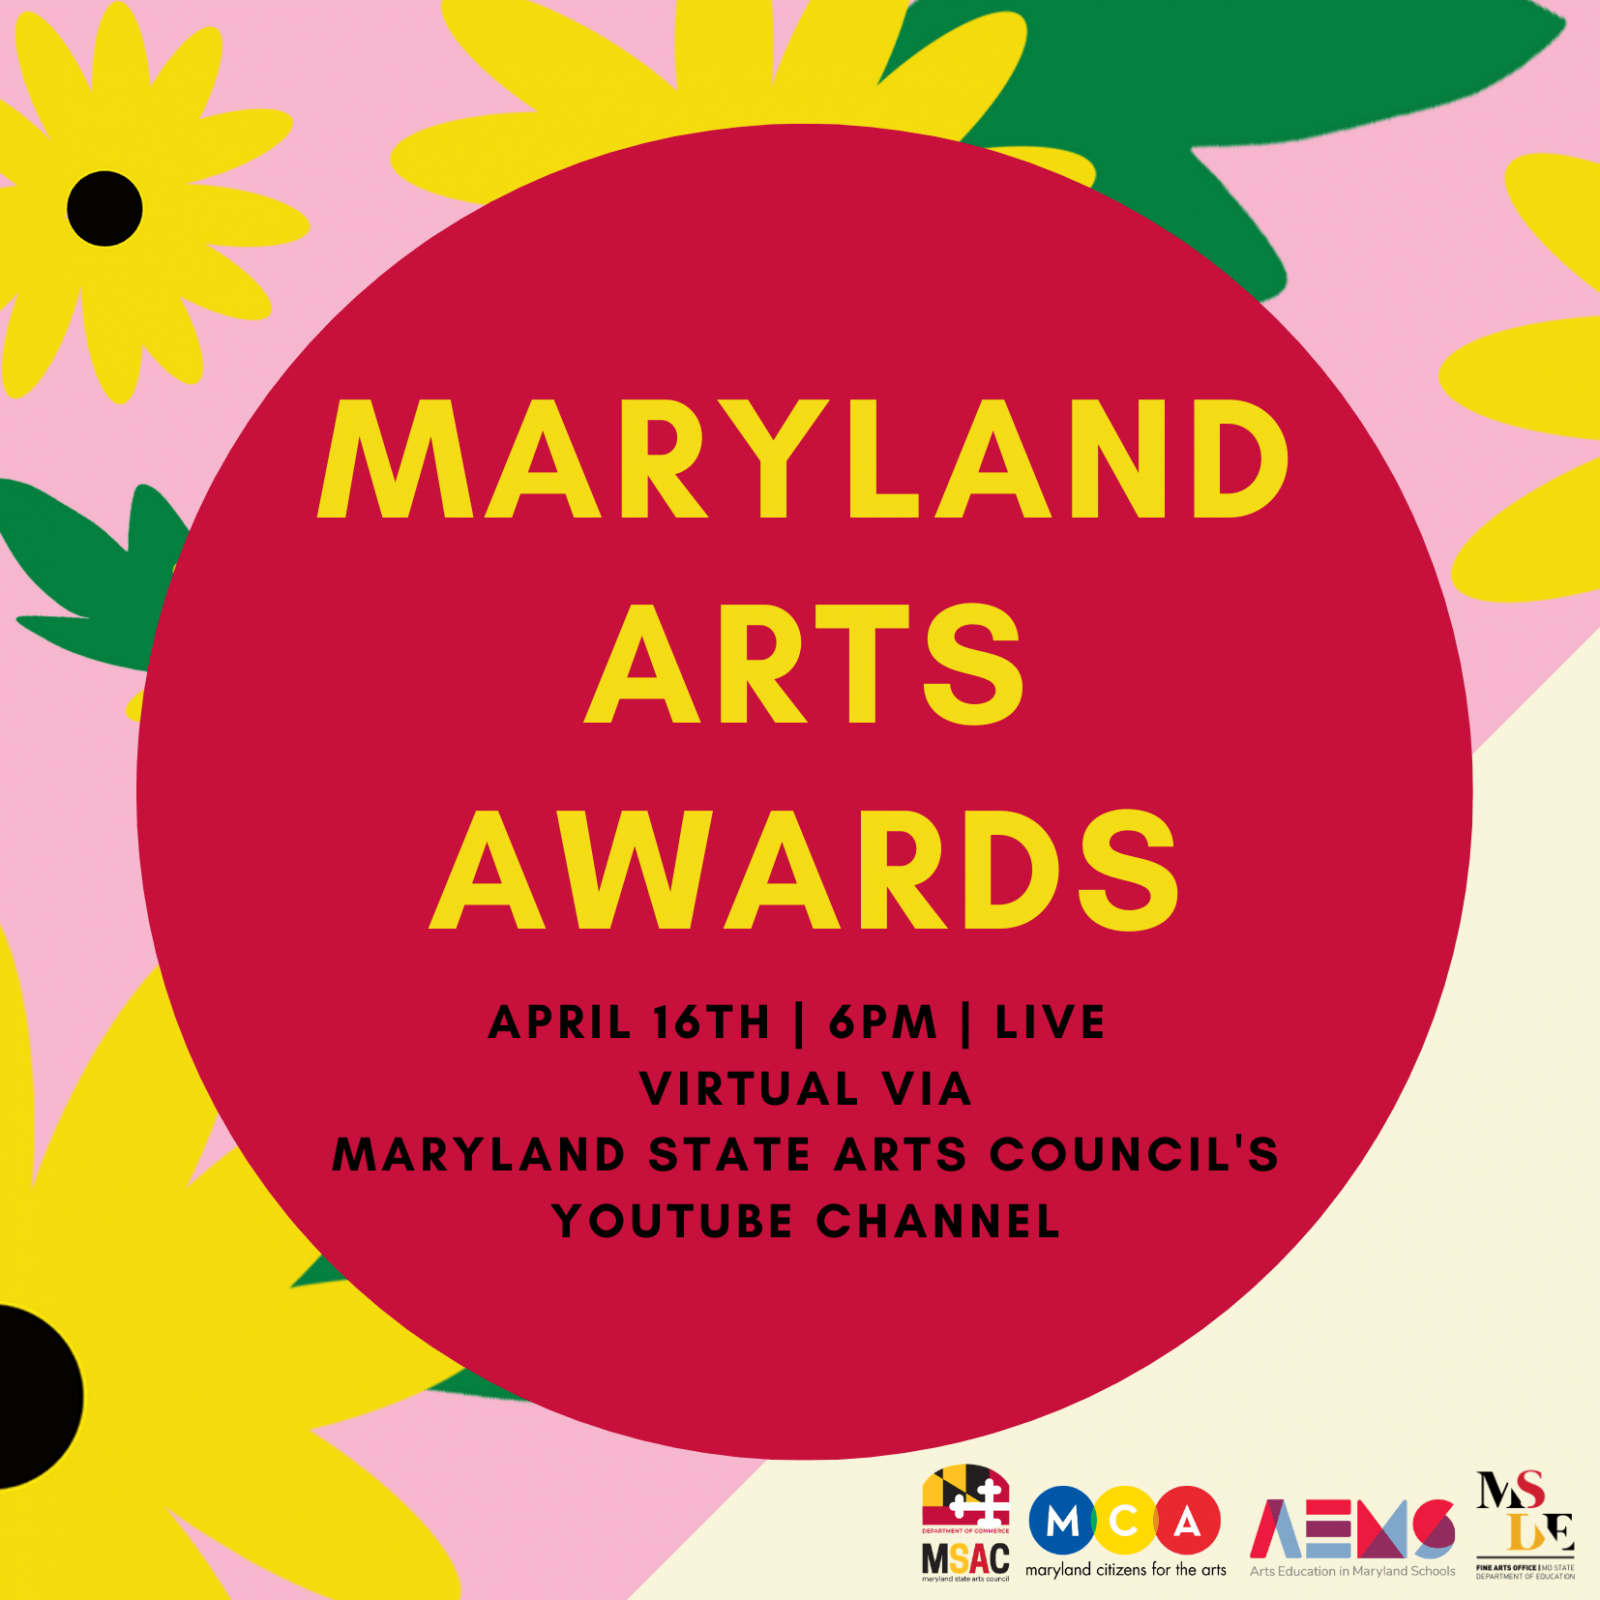 Maryland Arts Awards invitation